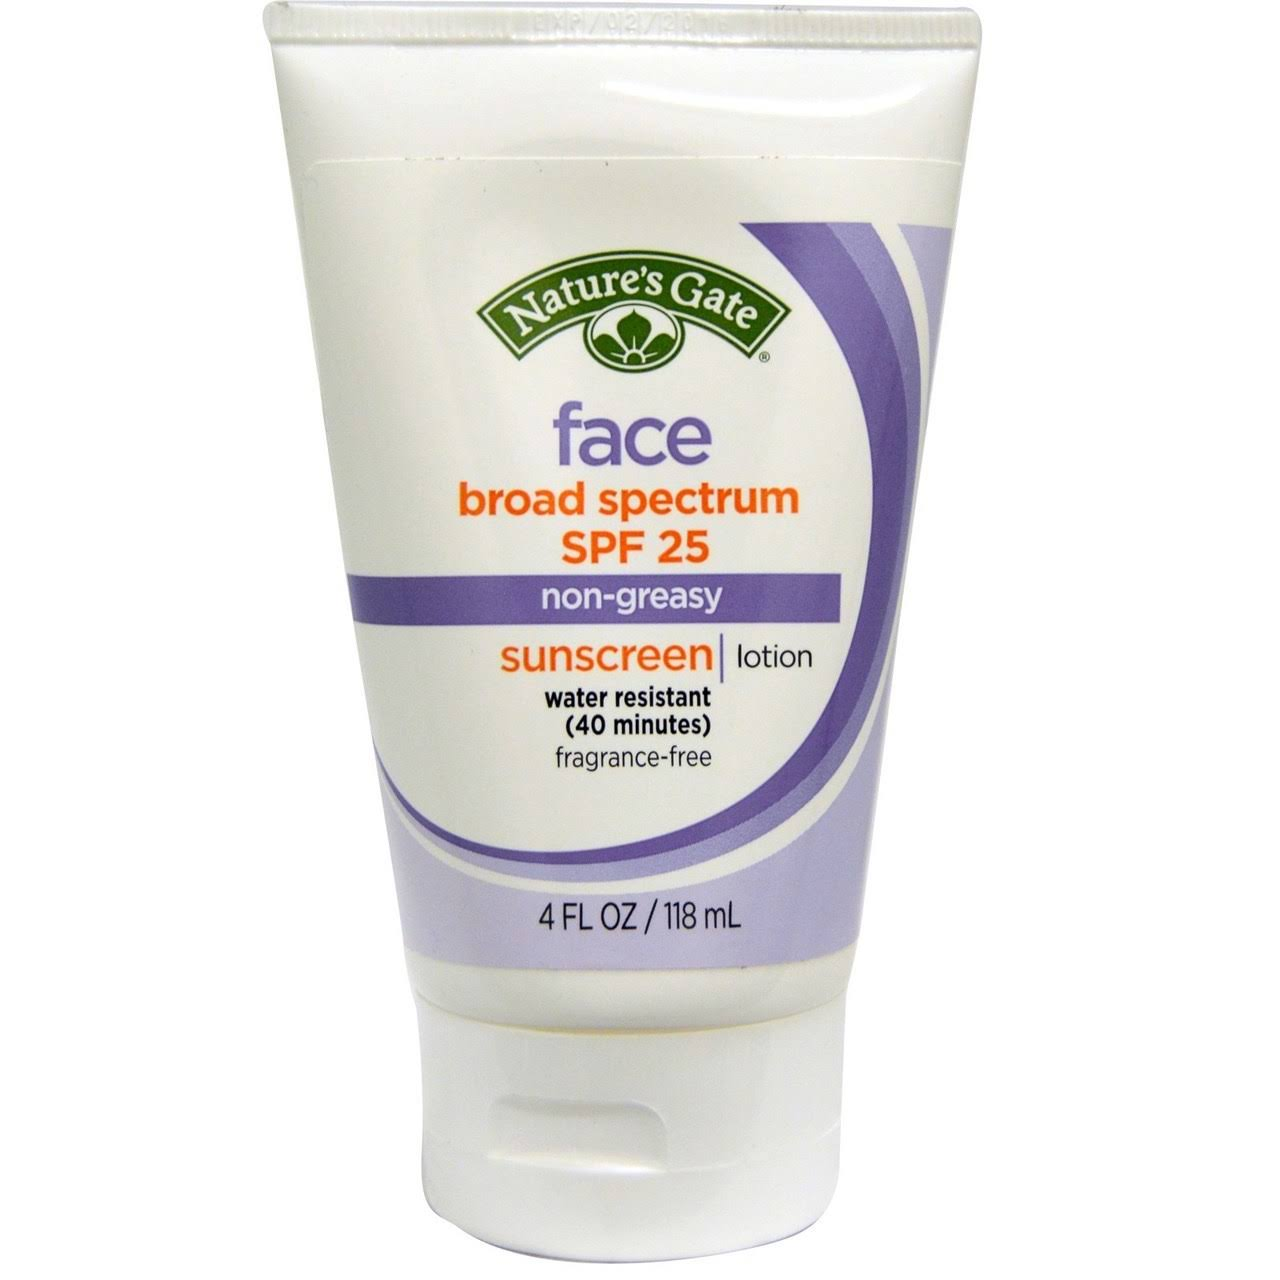 Nature's Gate Face Broad Spectrum Sunscreen Lotion - SPF 25, 118ml